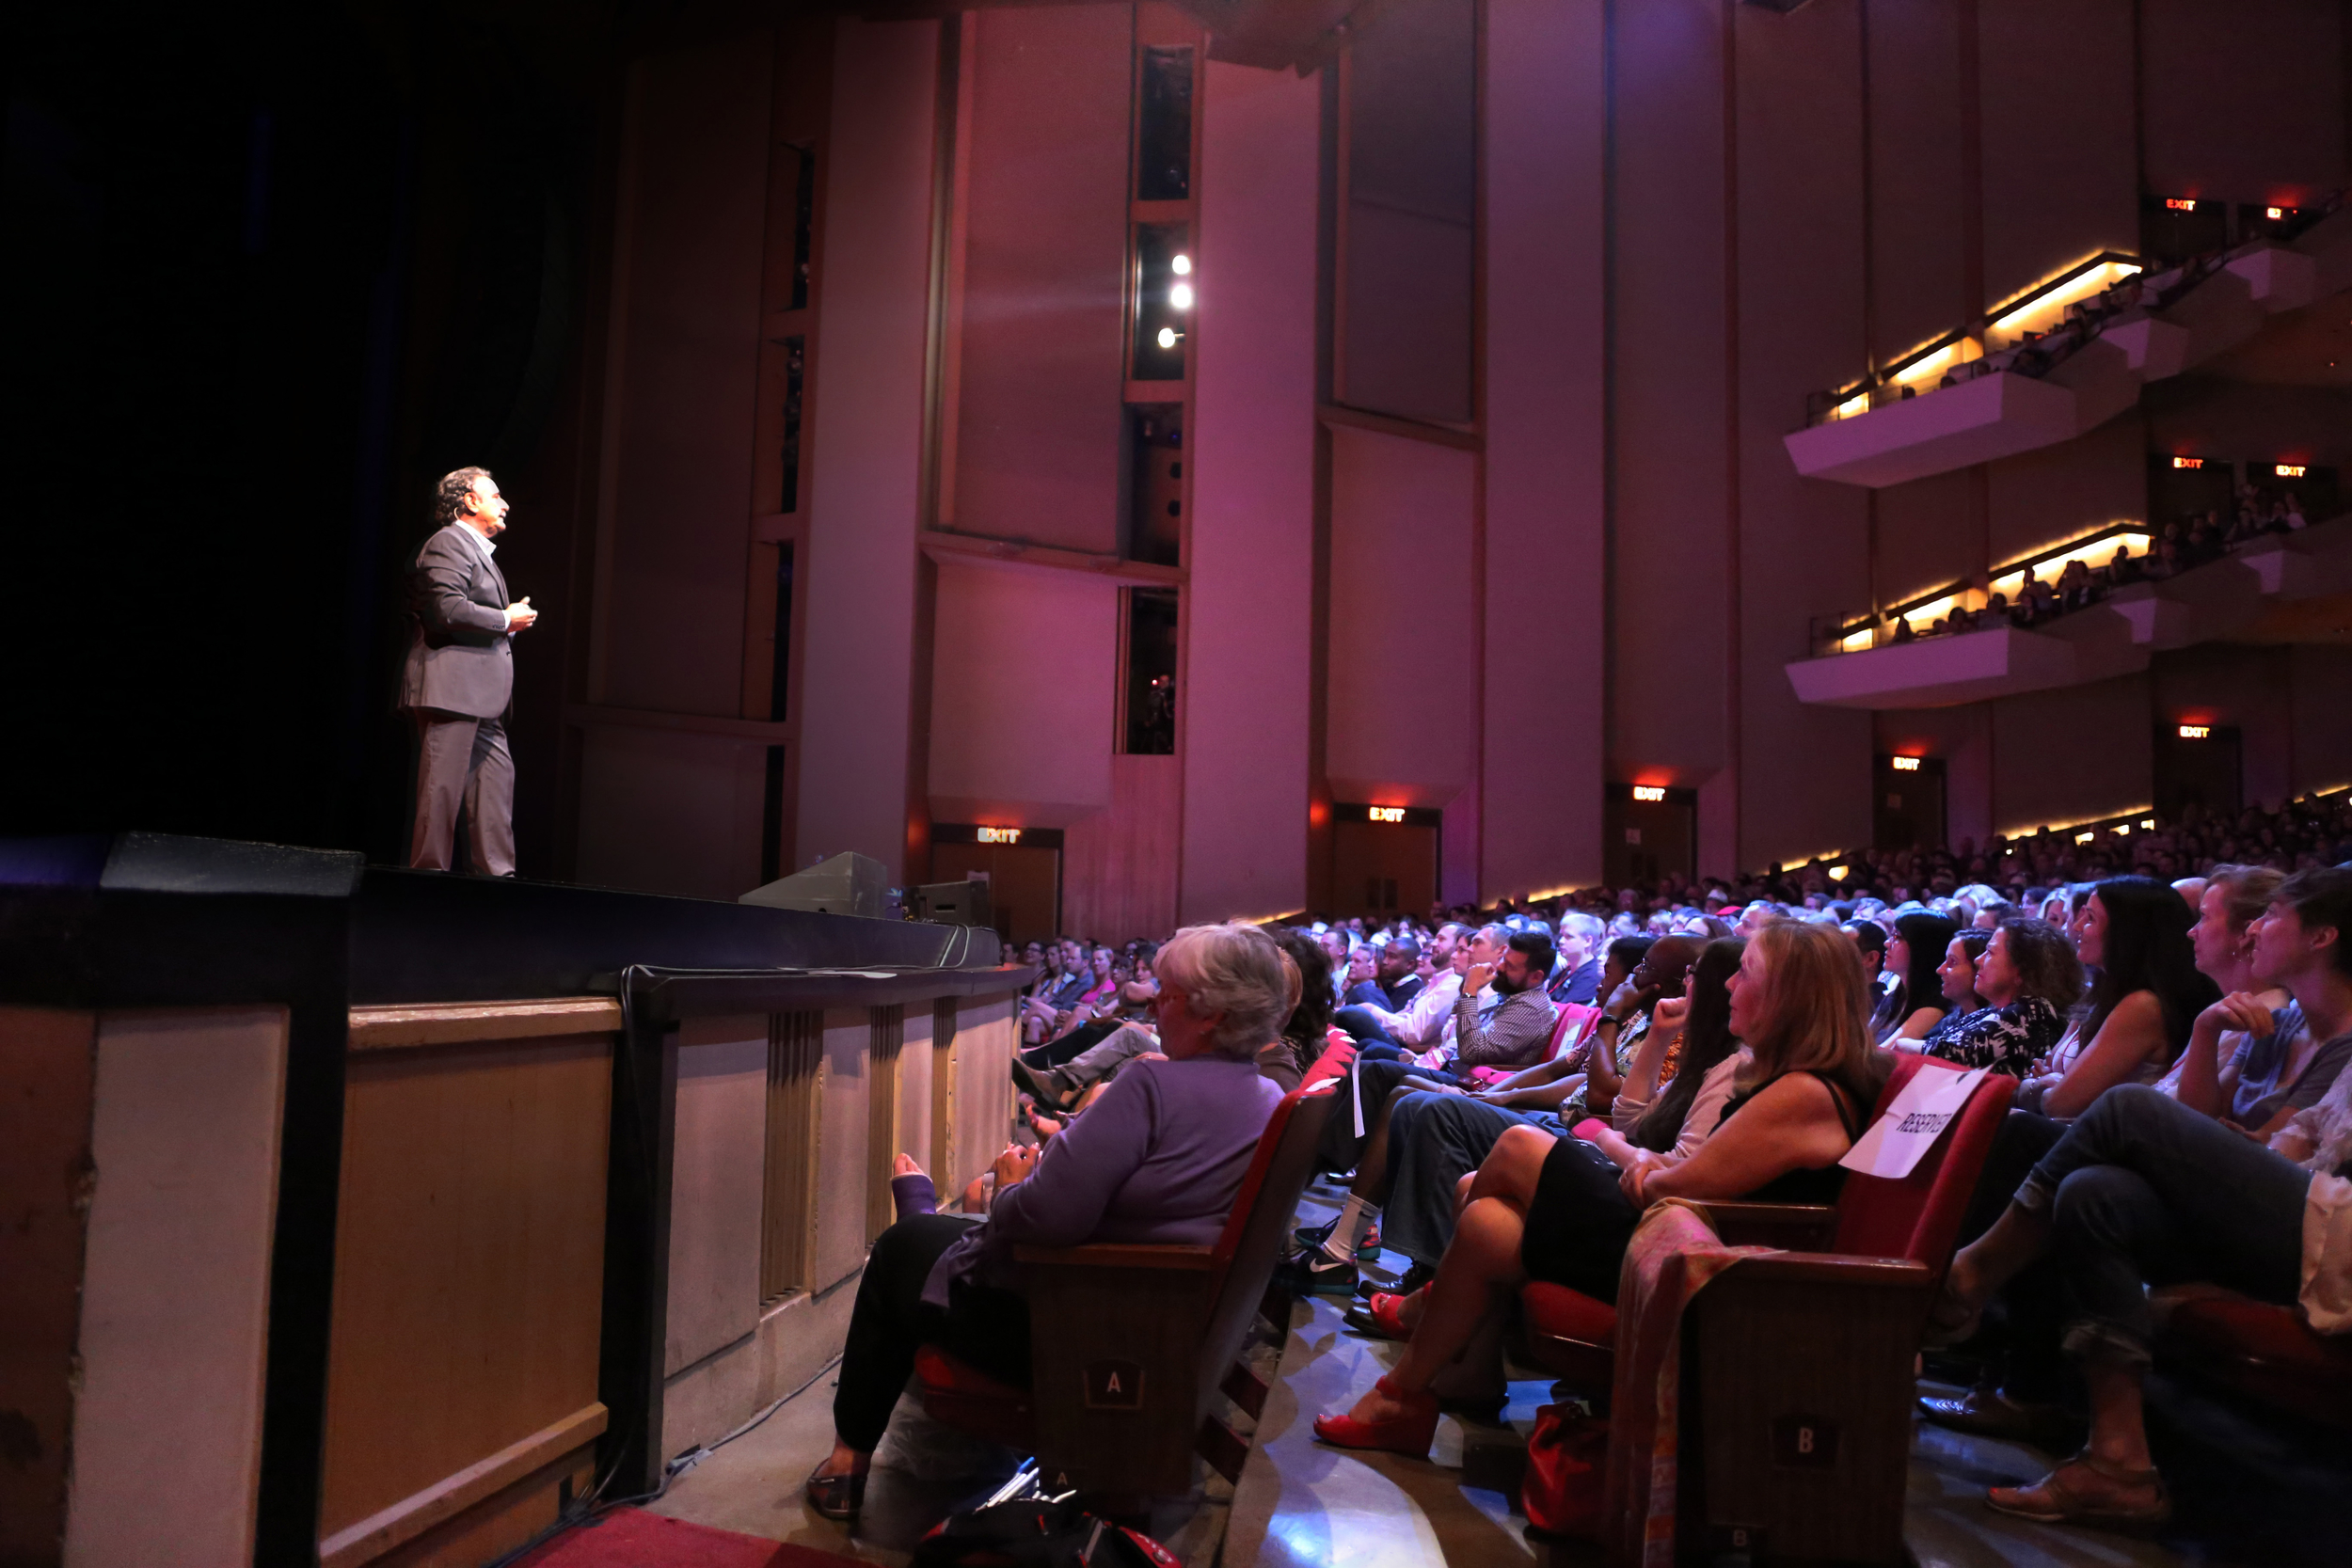 """TEDxSacramento speaker Dr. Ernesto Sirolli delivering the first talk at TEDxSacramento2015 """"THIS Changes EVERYTHING"""" on June 12, 2015. Photo: Phil America."""